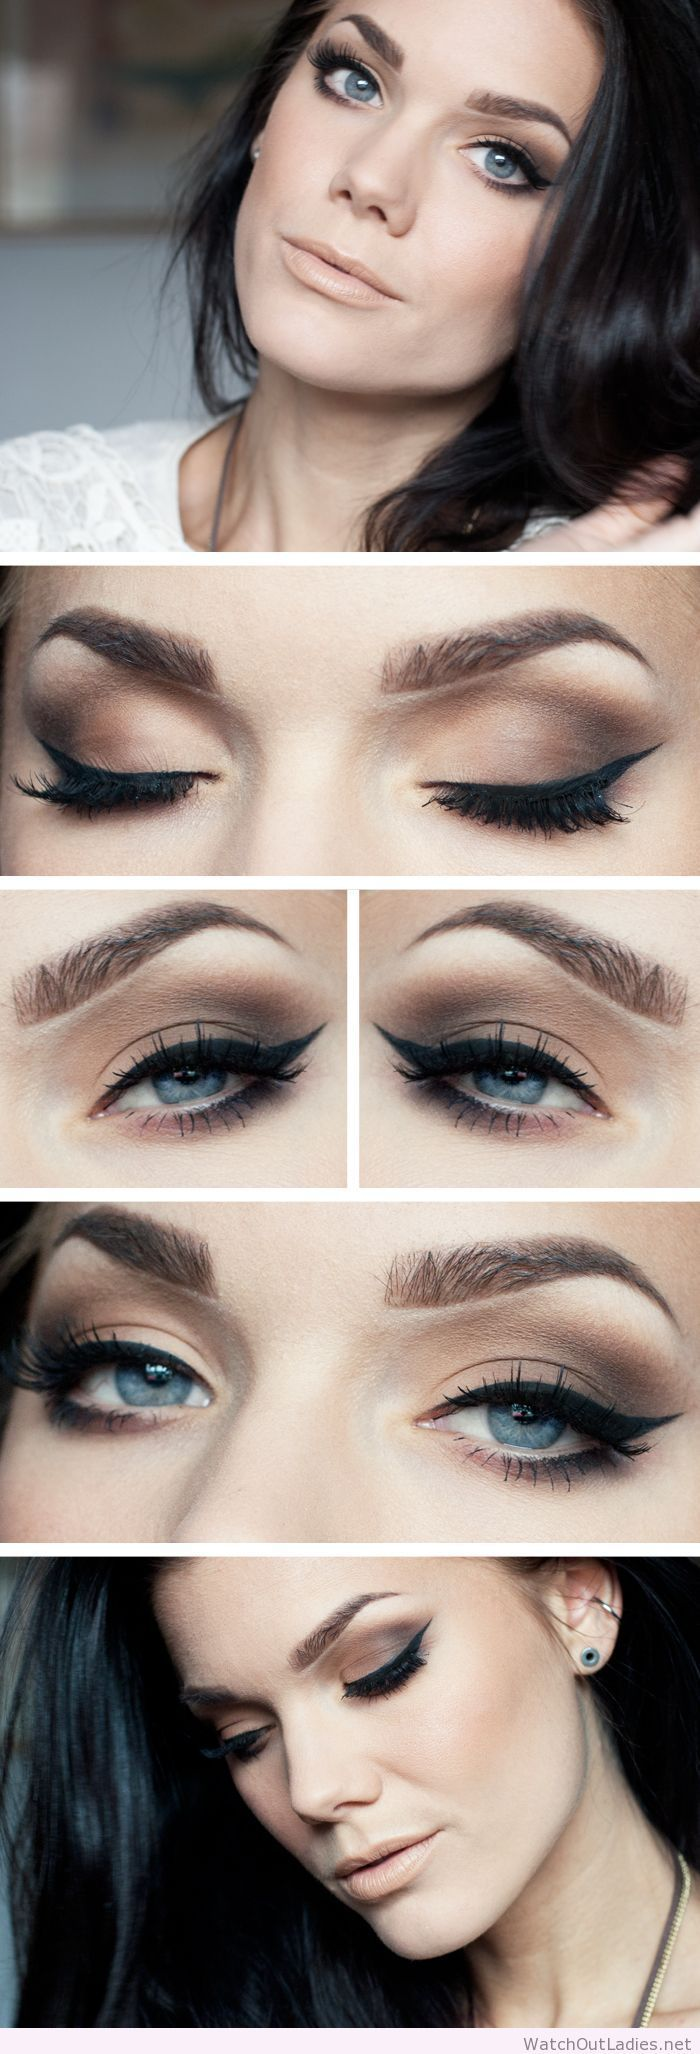 Linda hallberg nude makeup with black masquerade pinterest